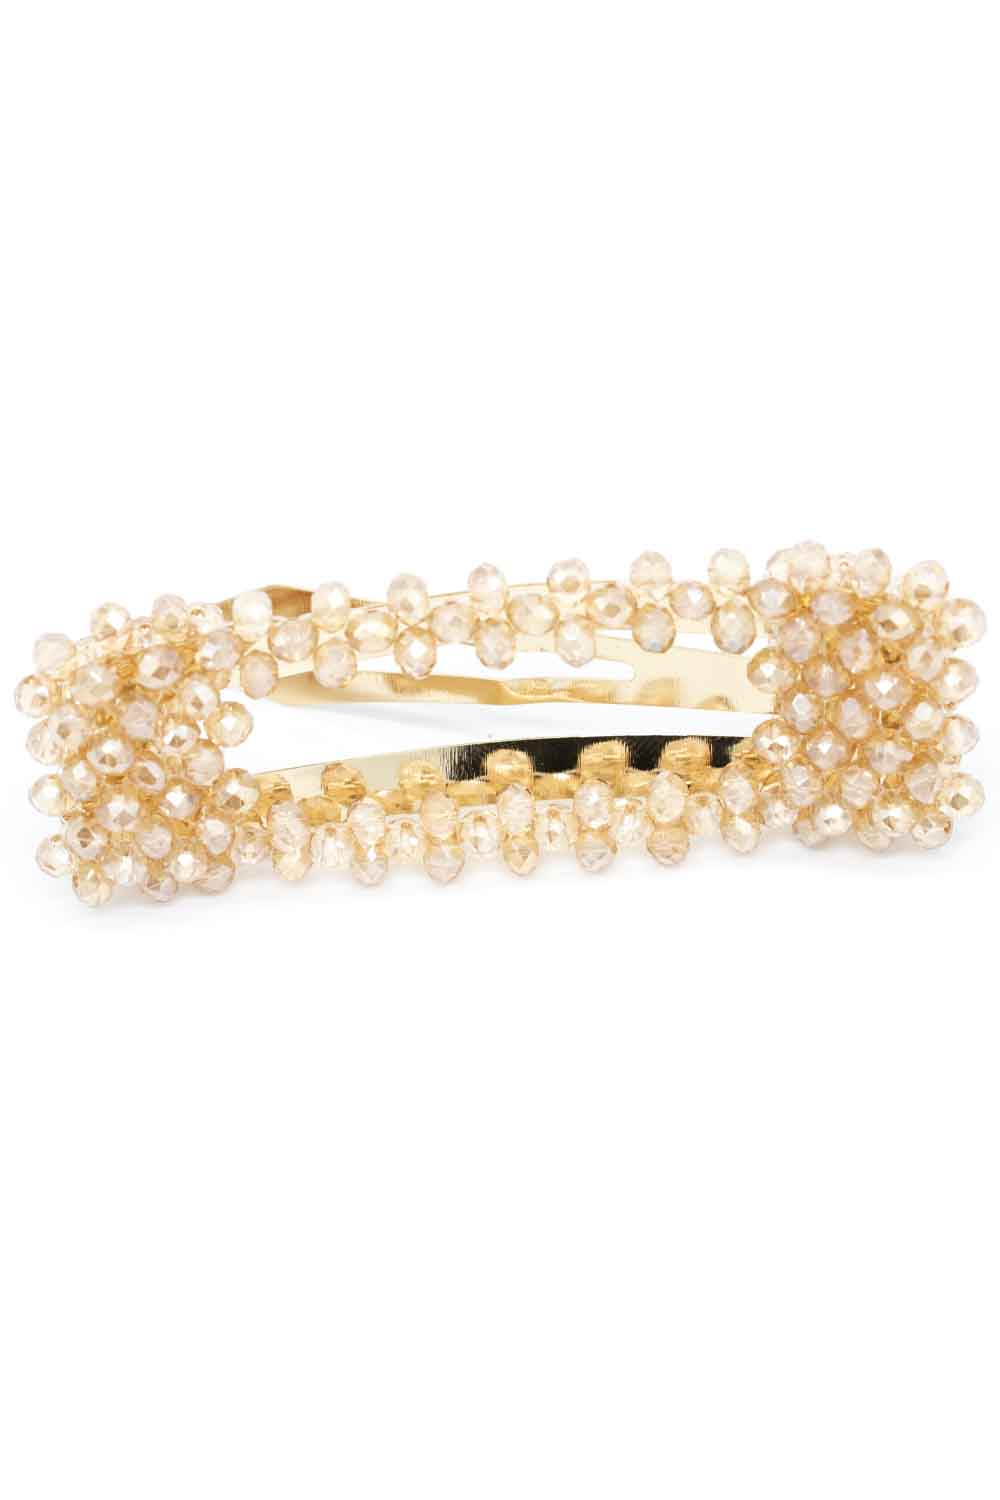 MIZALLE Bead Detailed Rectangle Hair Clips (Cream) (1)